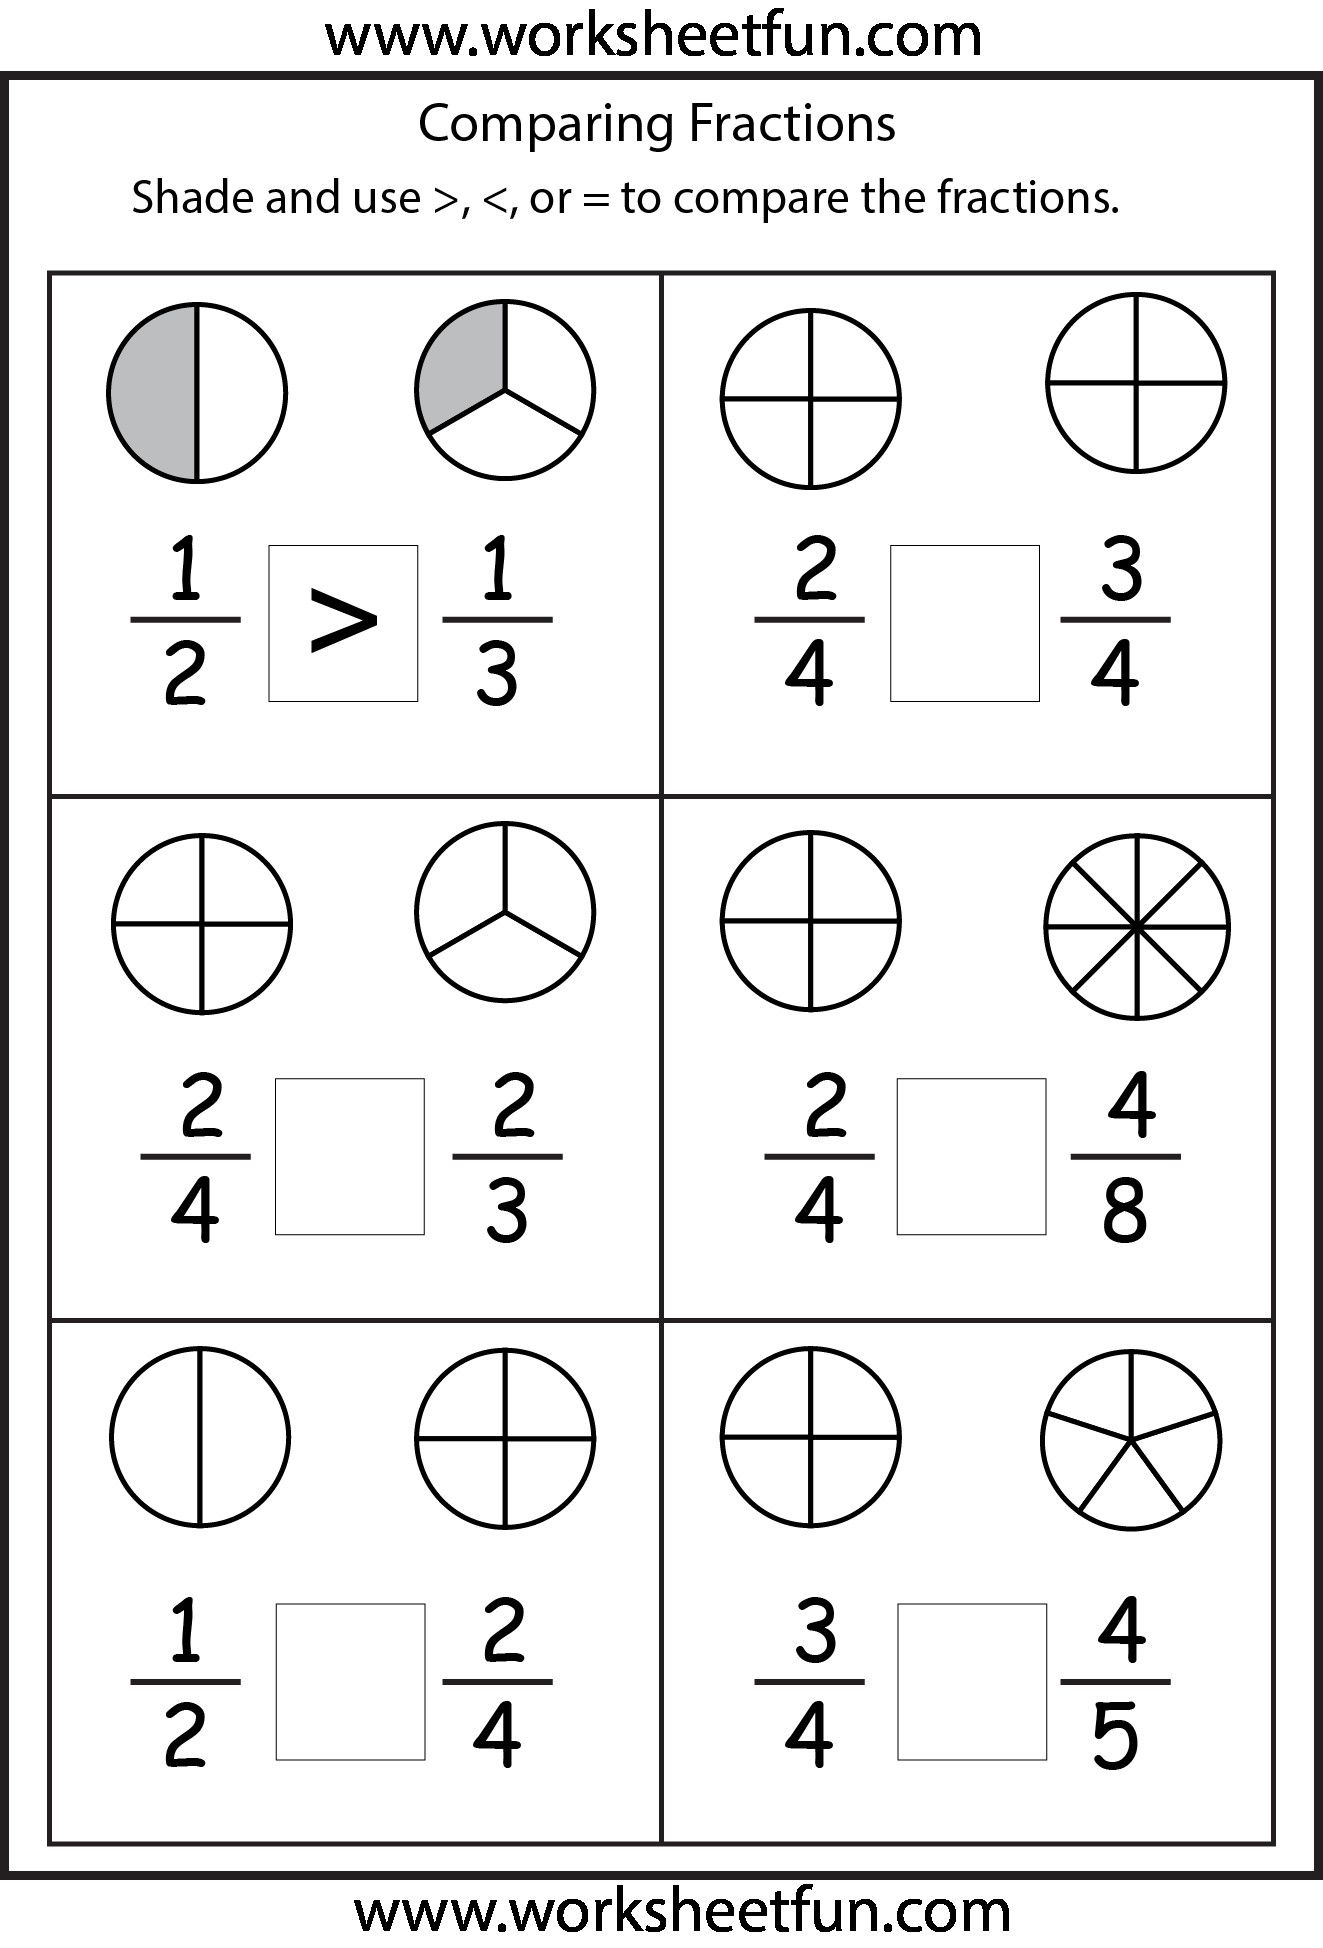 small resolution of 5 Adding Fractions with Like Denominators Worksheets 2 in 2020   2nd grade  math worksheets